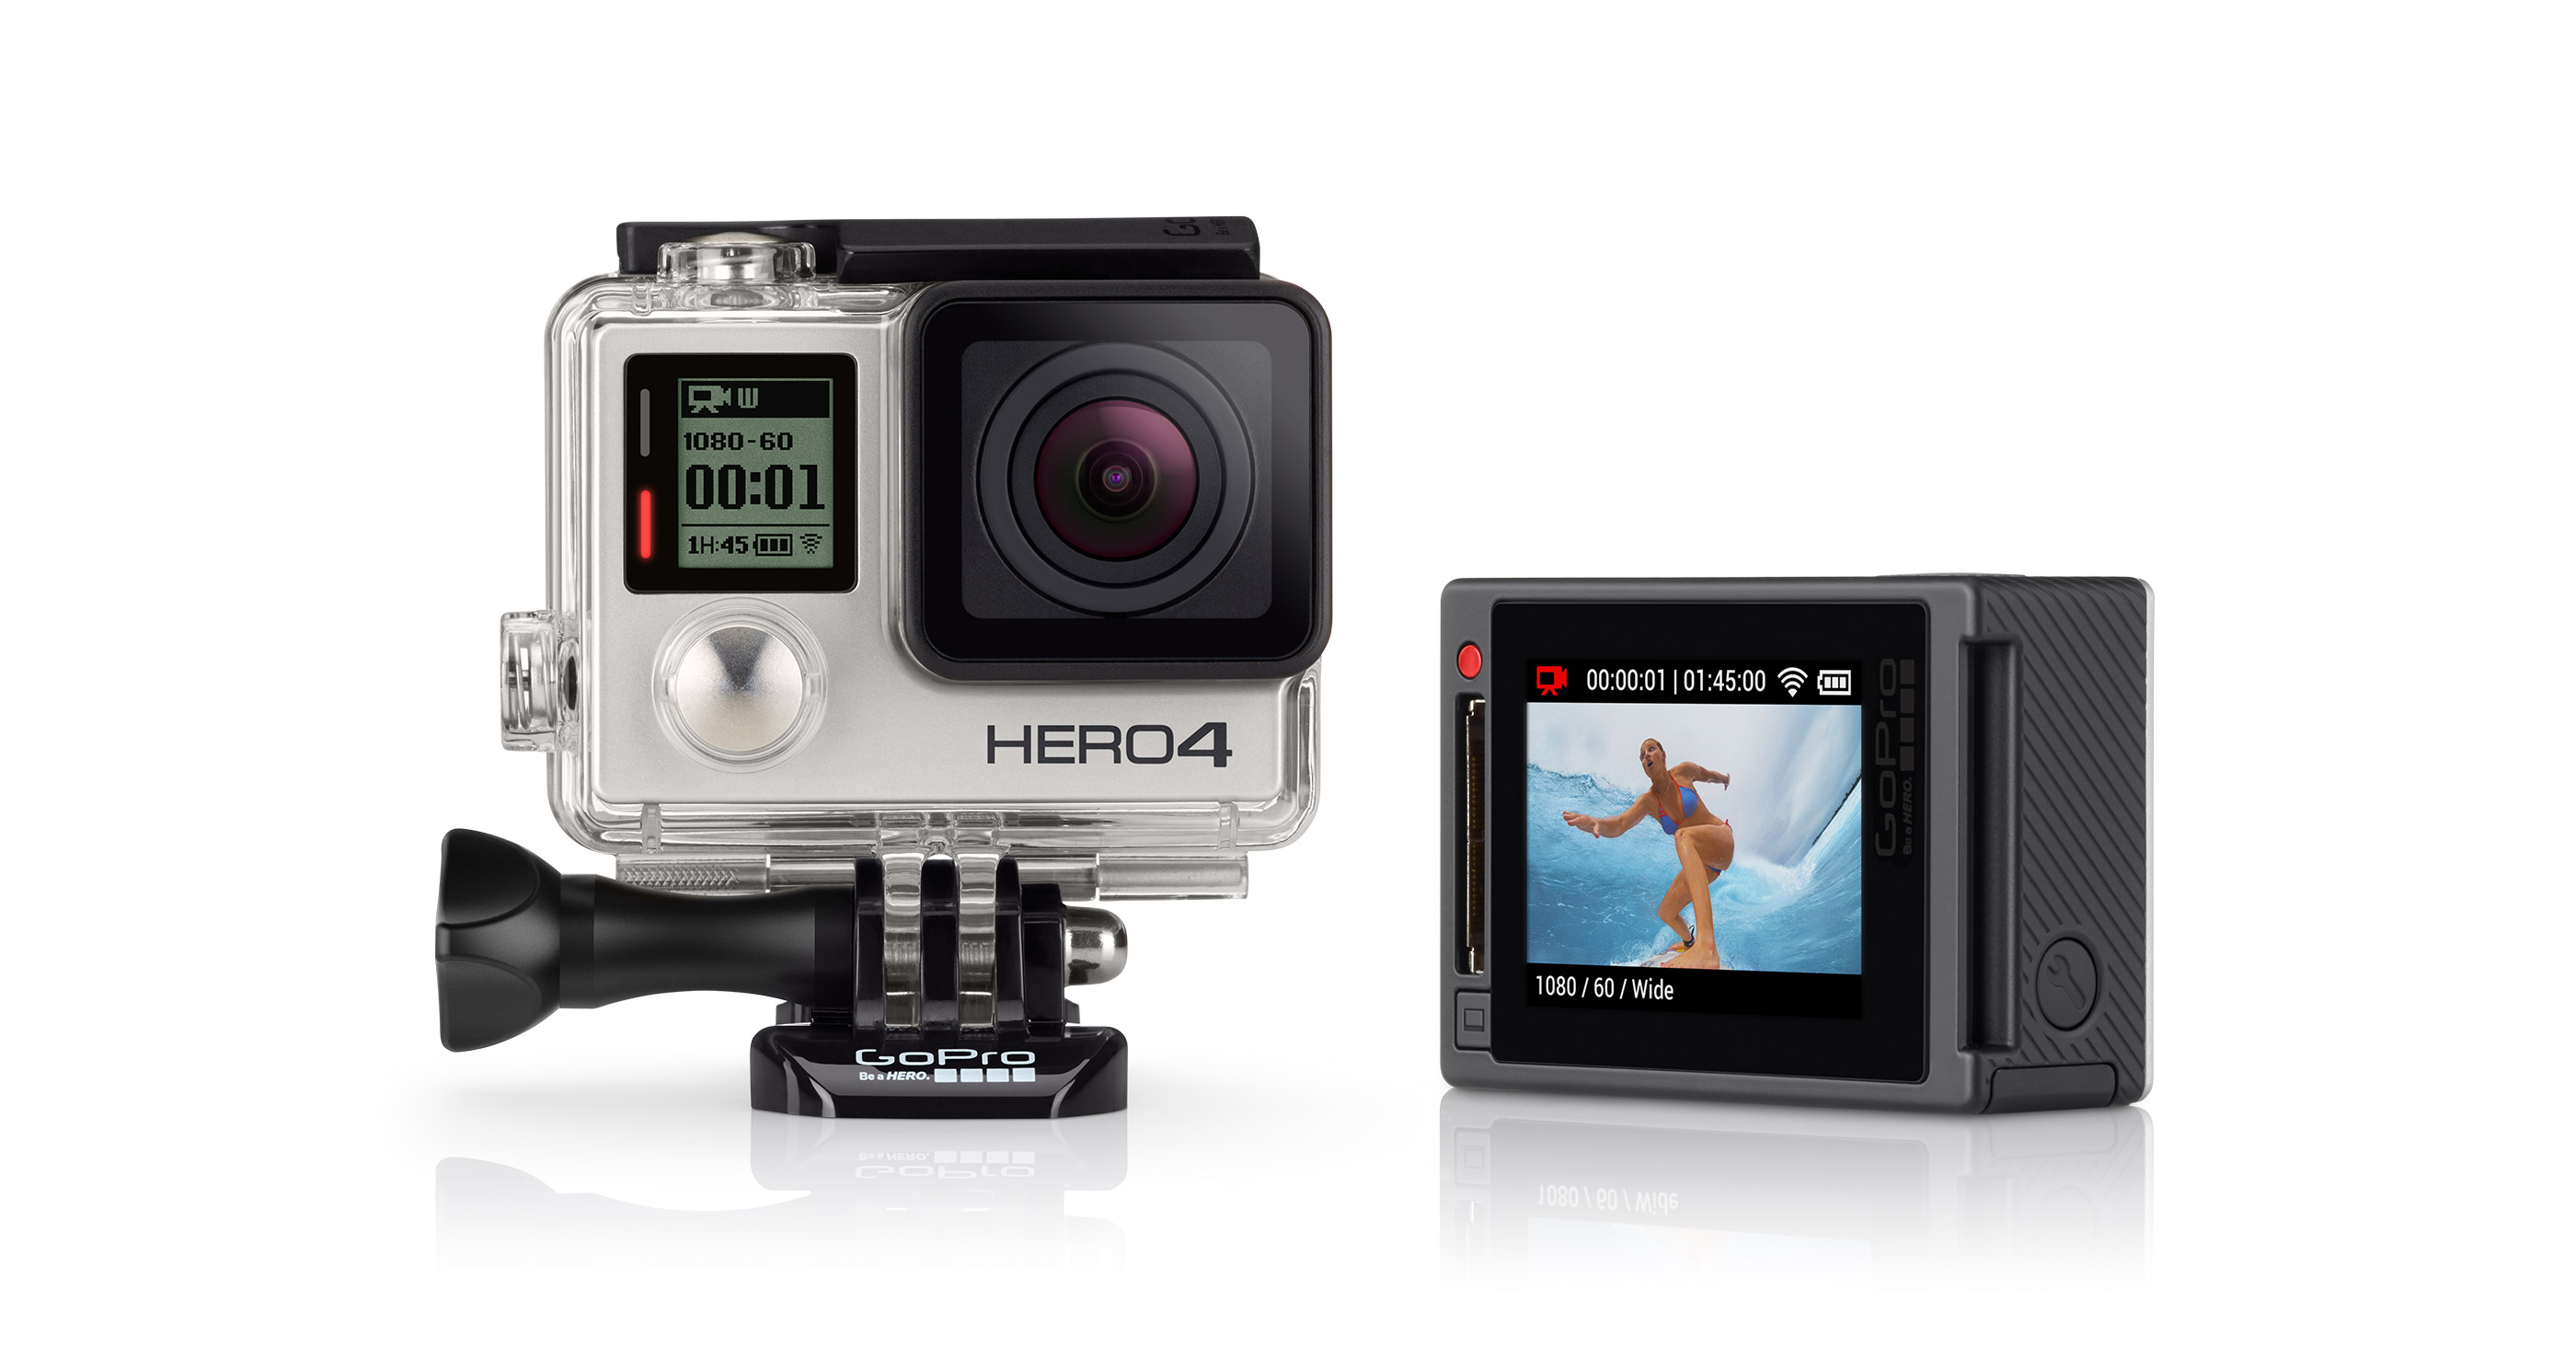 GoPro unveils three new models, including $130 action cam